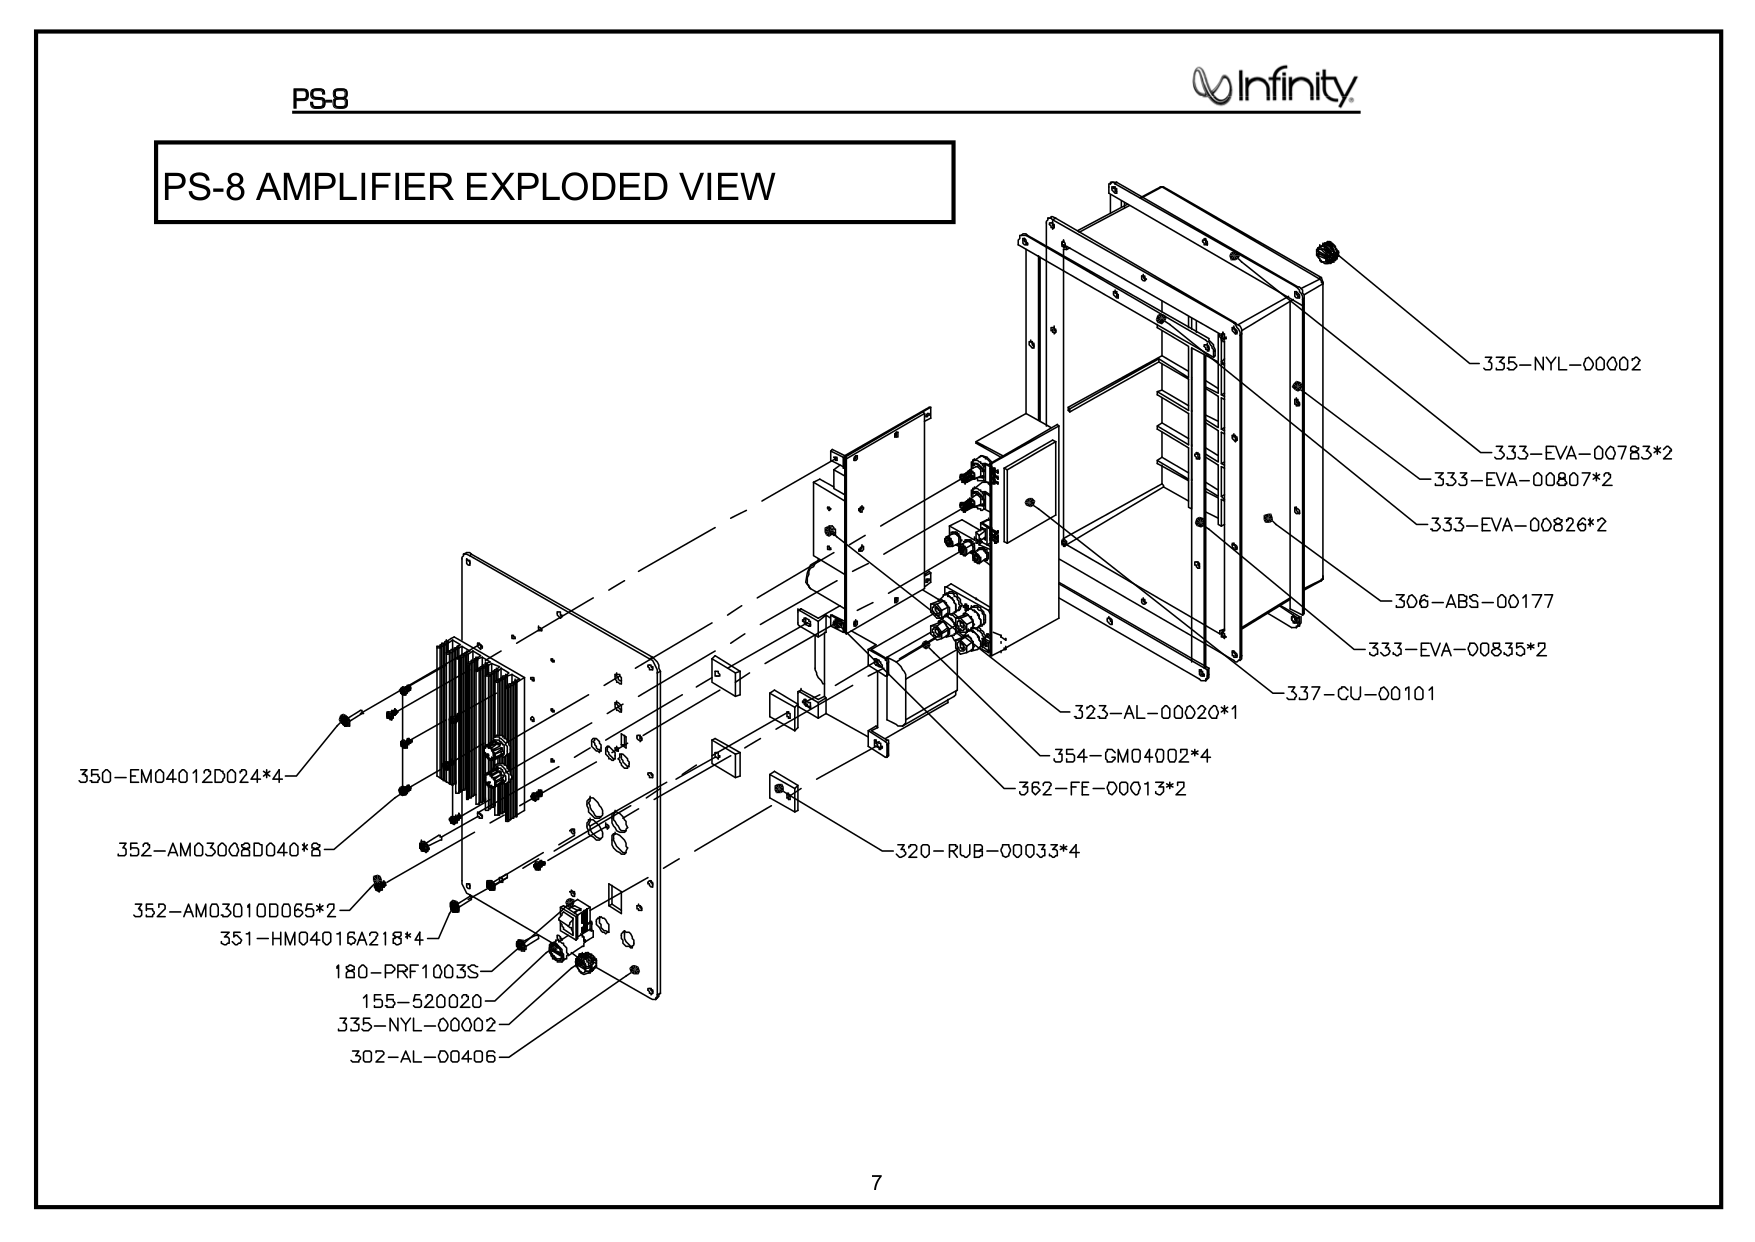 pdf manual for infinity subwoofer ps 10